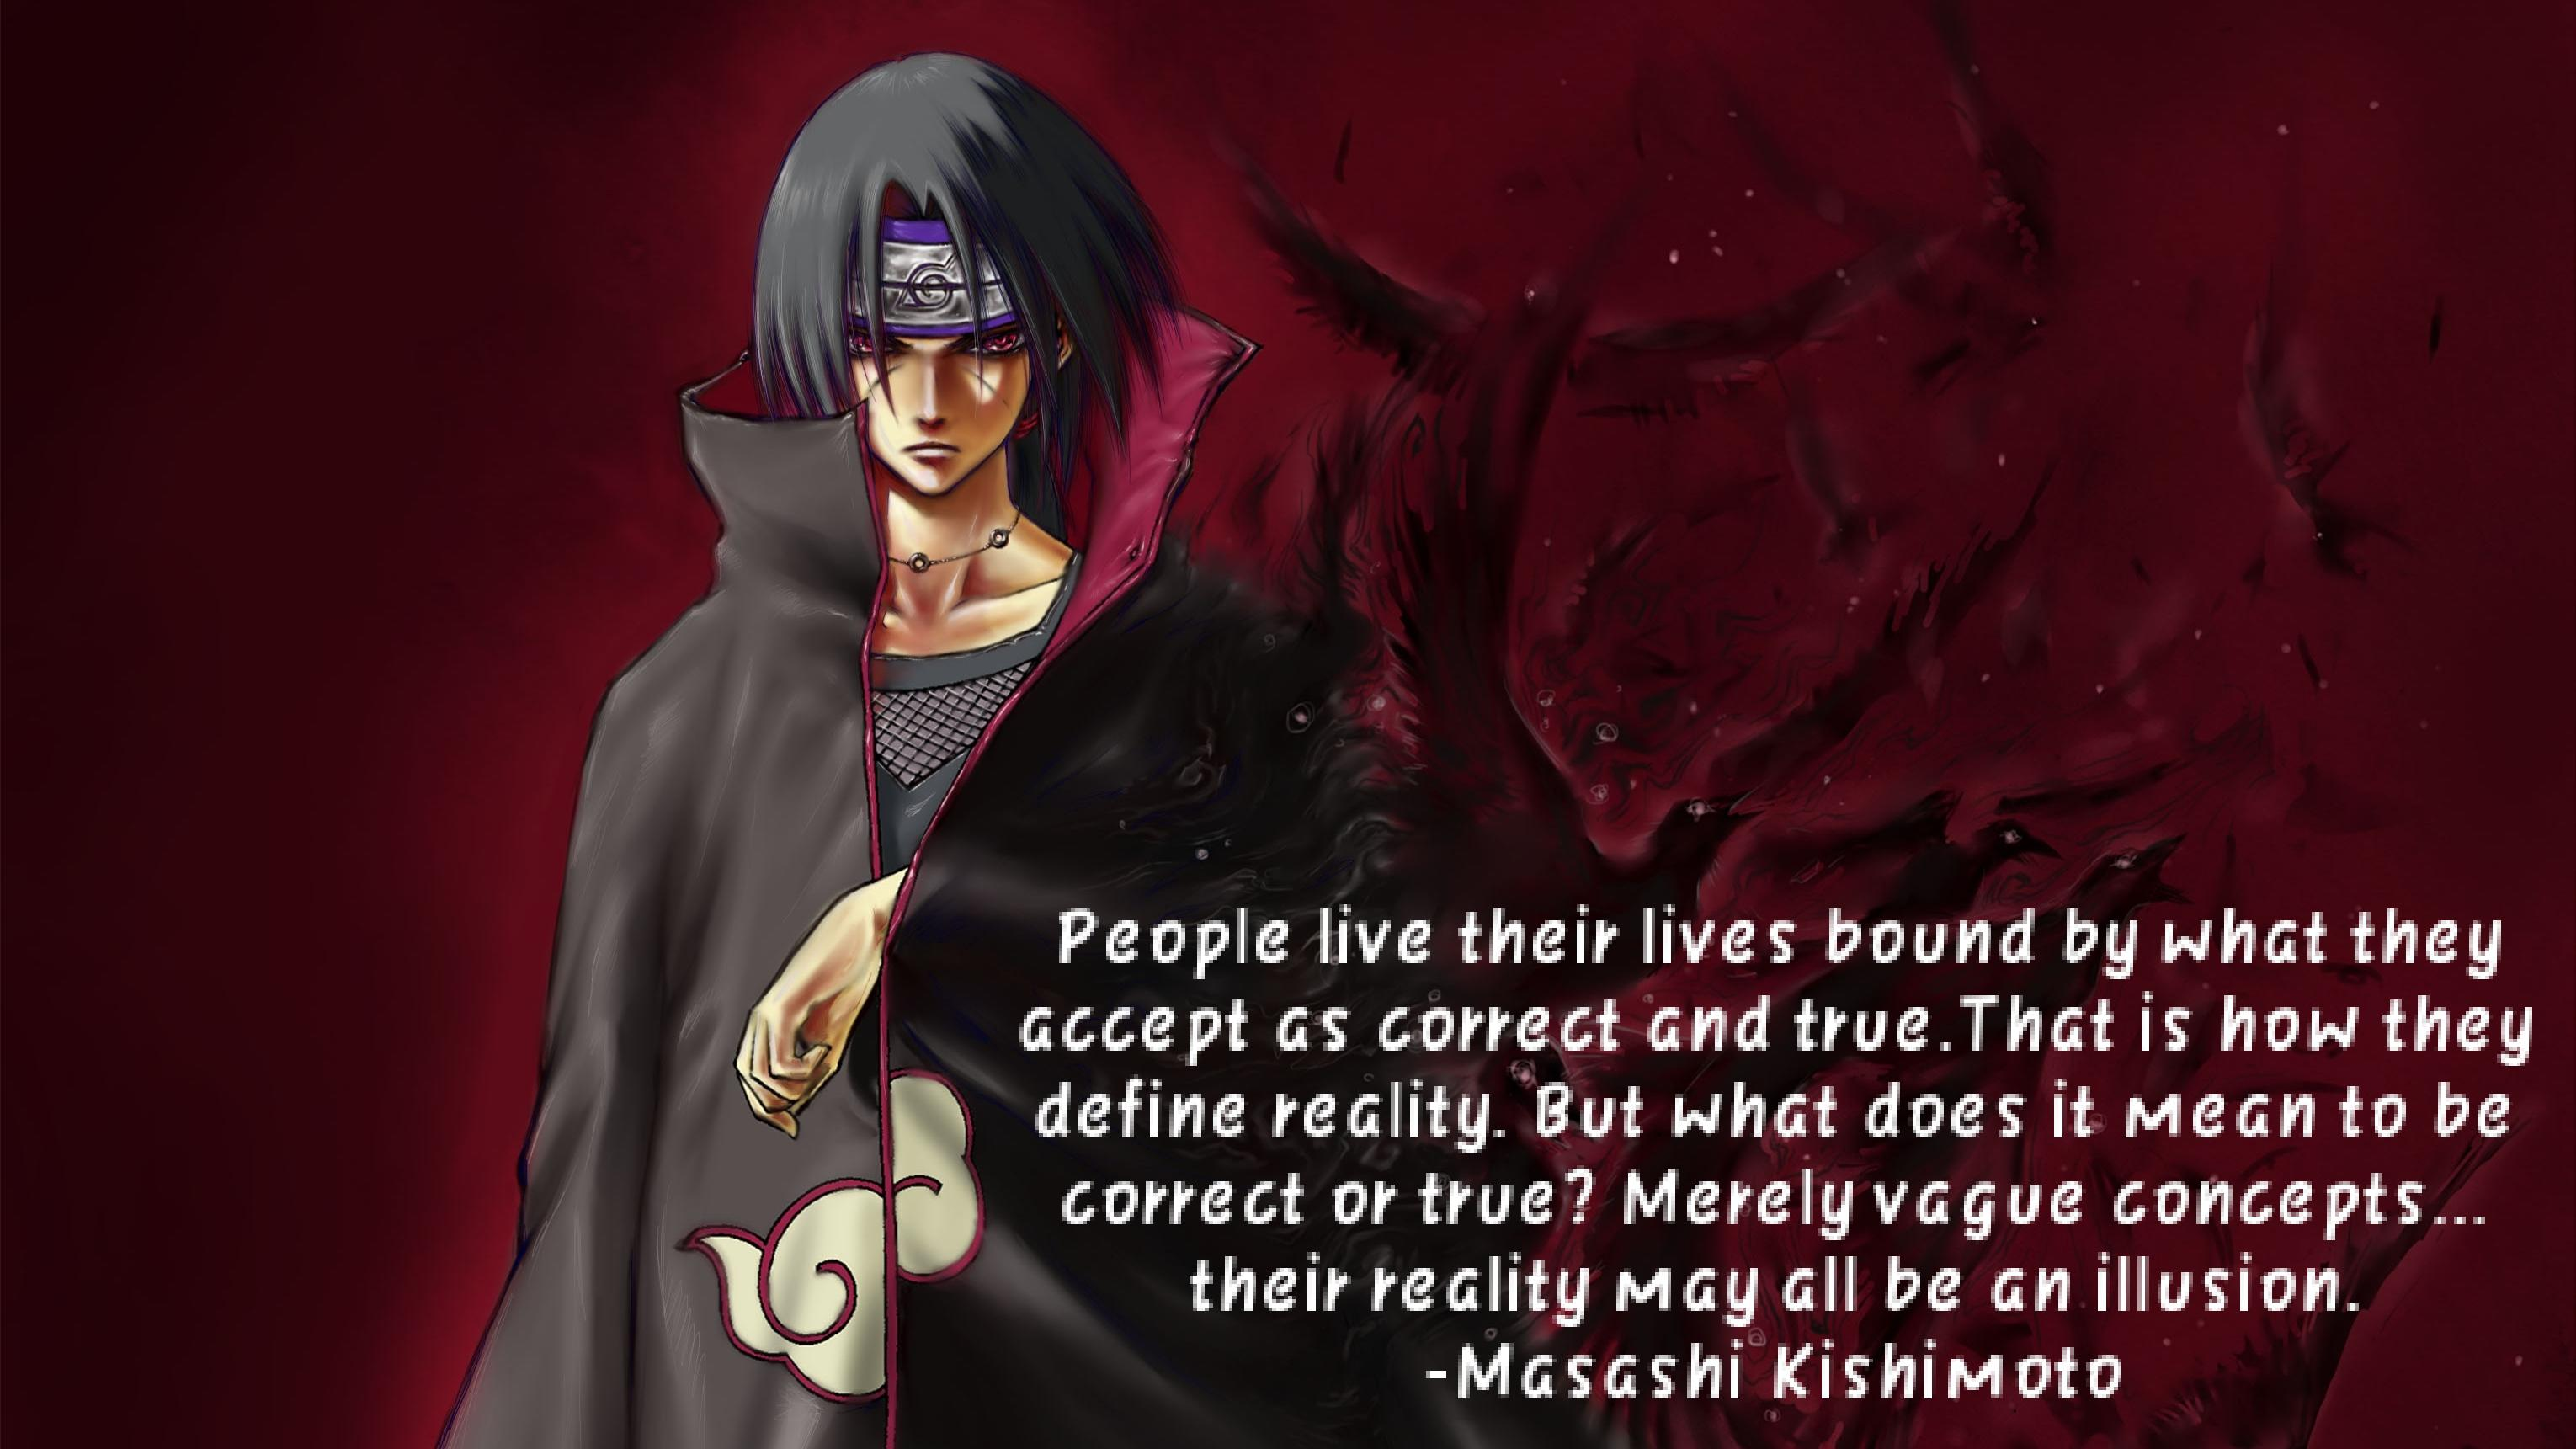 People live their lives bound by what they accept as correct and true.That is how they define reality. But what does it mean to be correct or true? Merely vague concepts… their reality may all be an illusion. -Masashi Kishimoto [3060×1721]